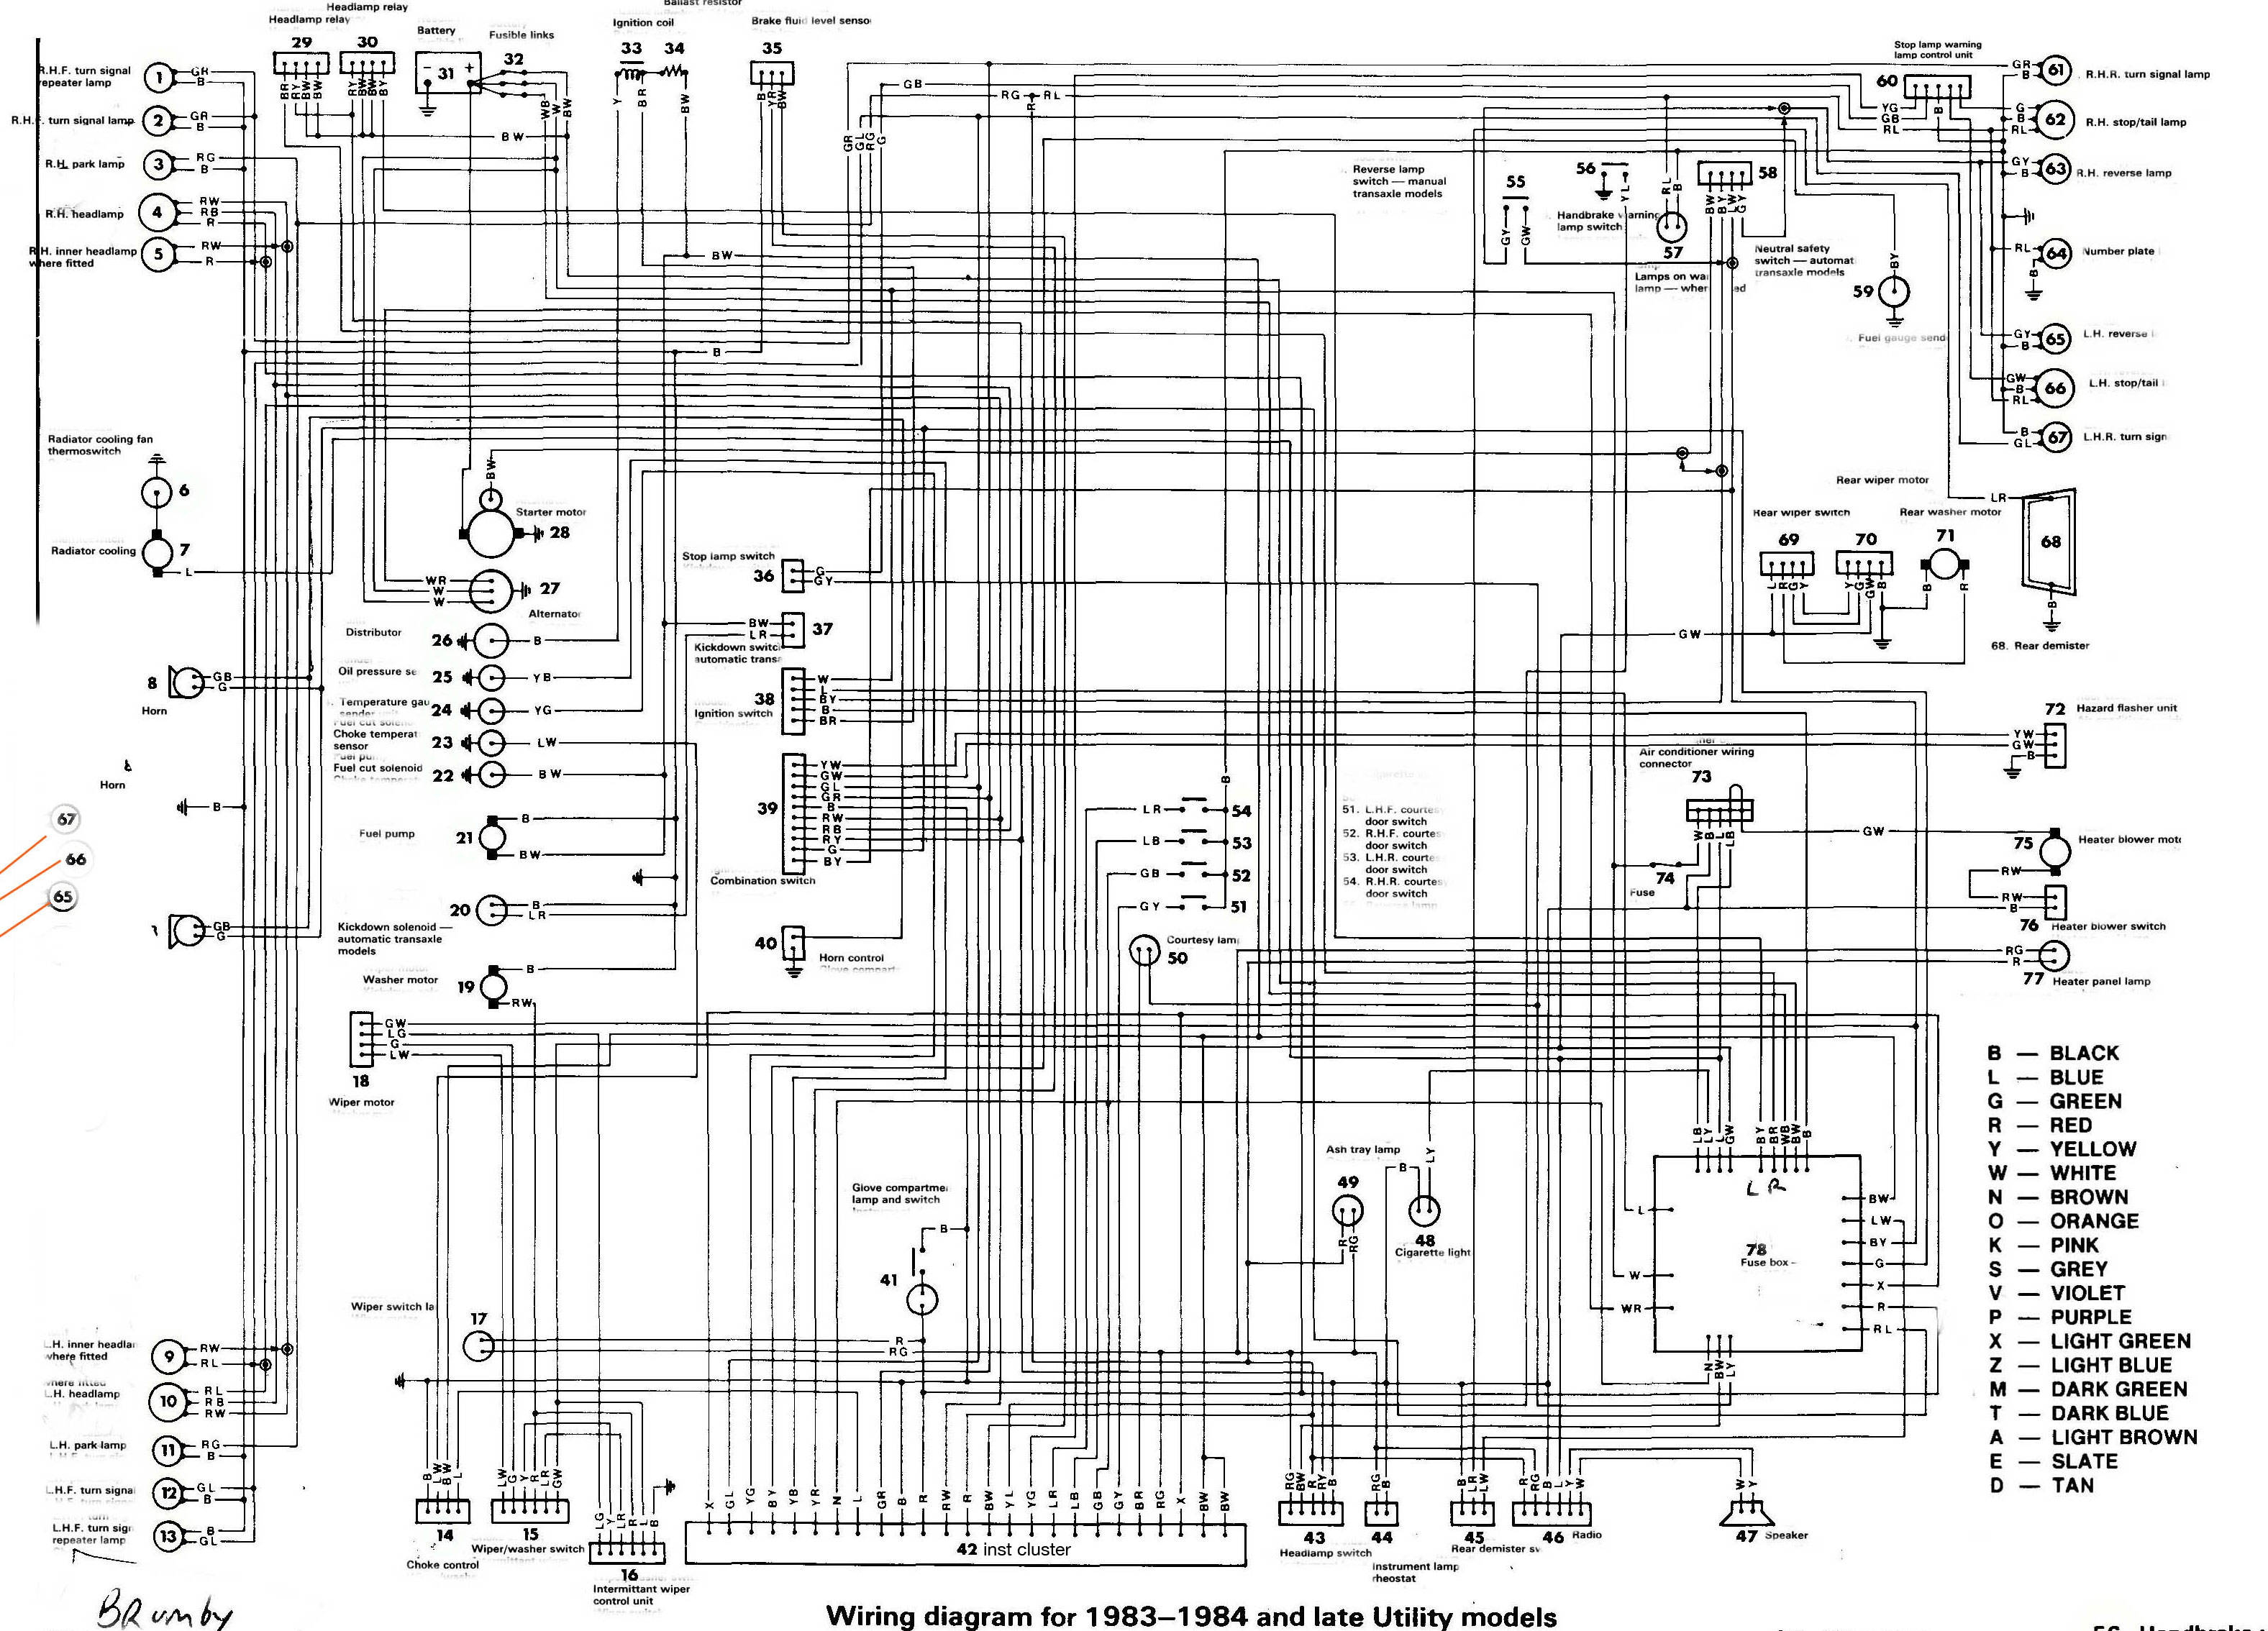 subaru wiring diagram - data wiring diagram forecast-pipe-a -  forecast-pipe-a.vivarelliauto.it  vivarelliauto.it